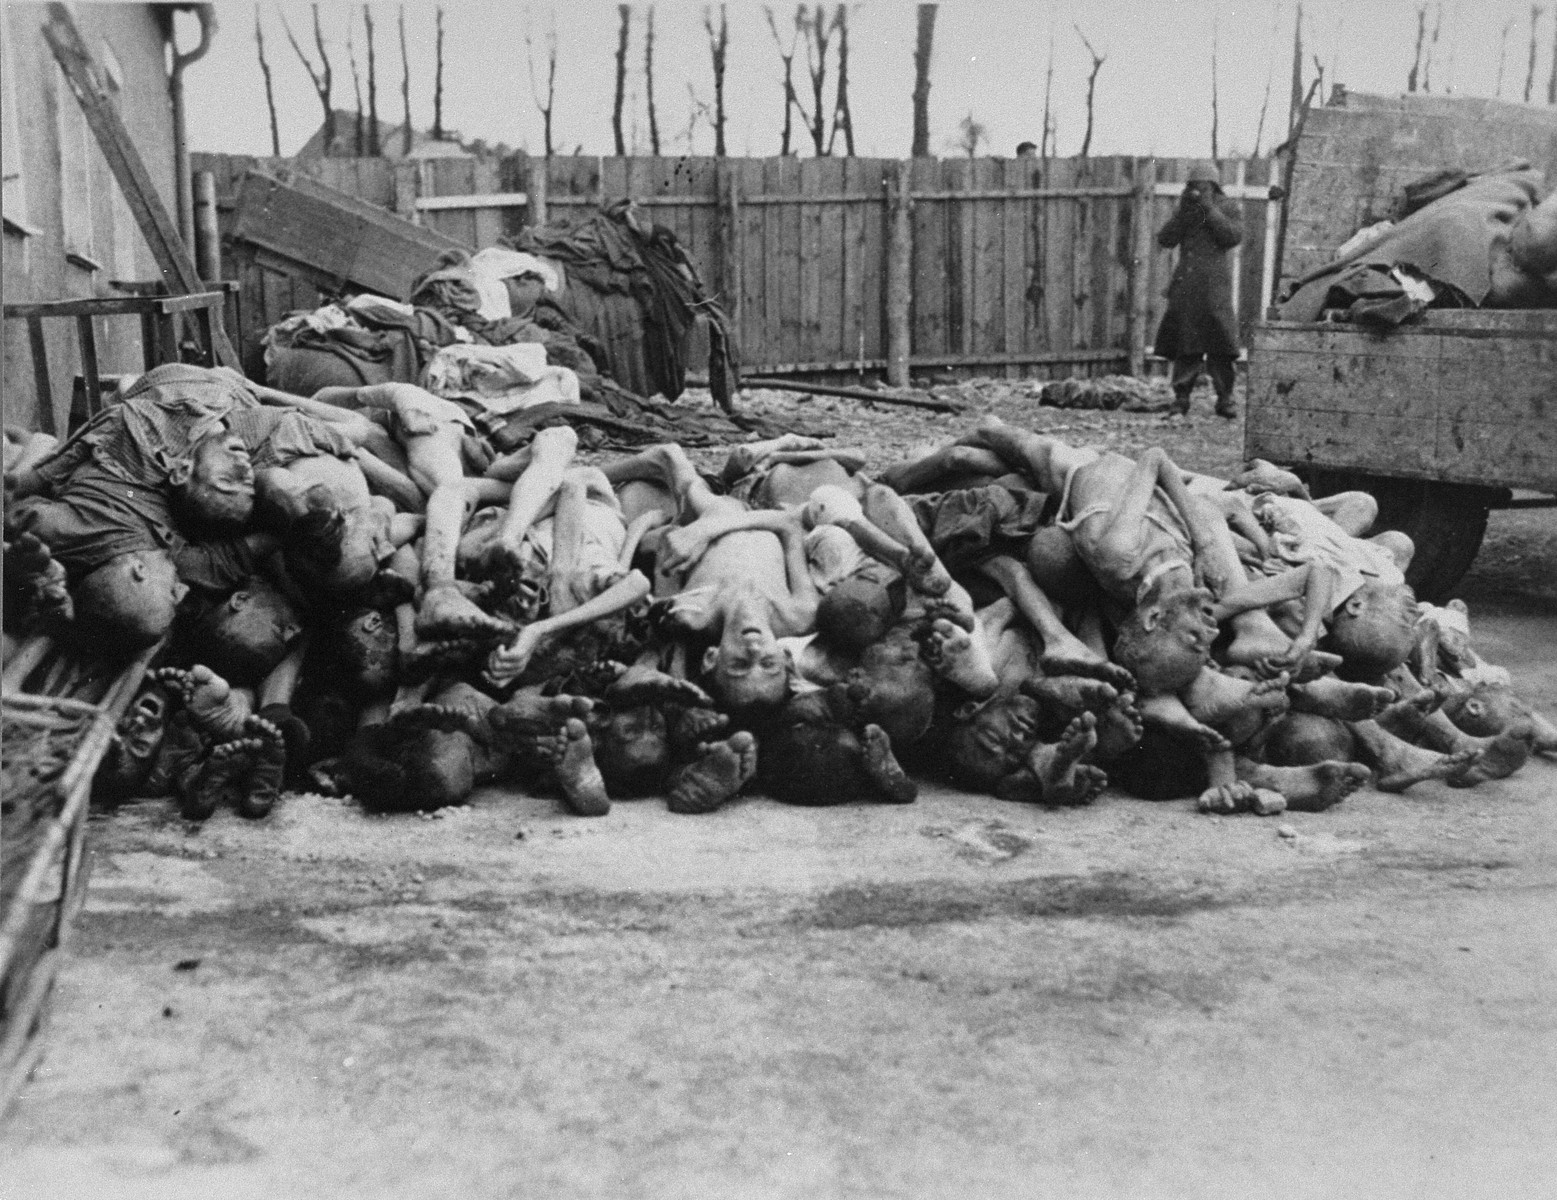 An American soldier photographs a pile of corpses in the newly liberated Buchenwald concentration camp.